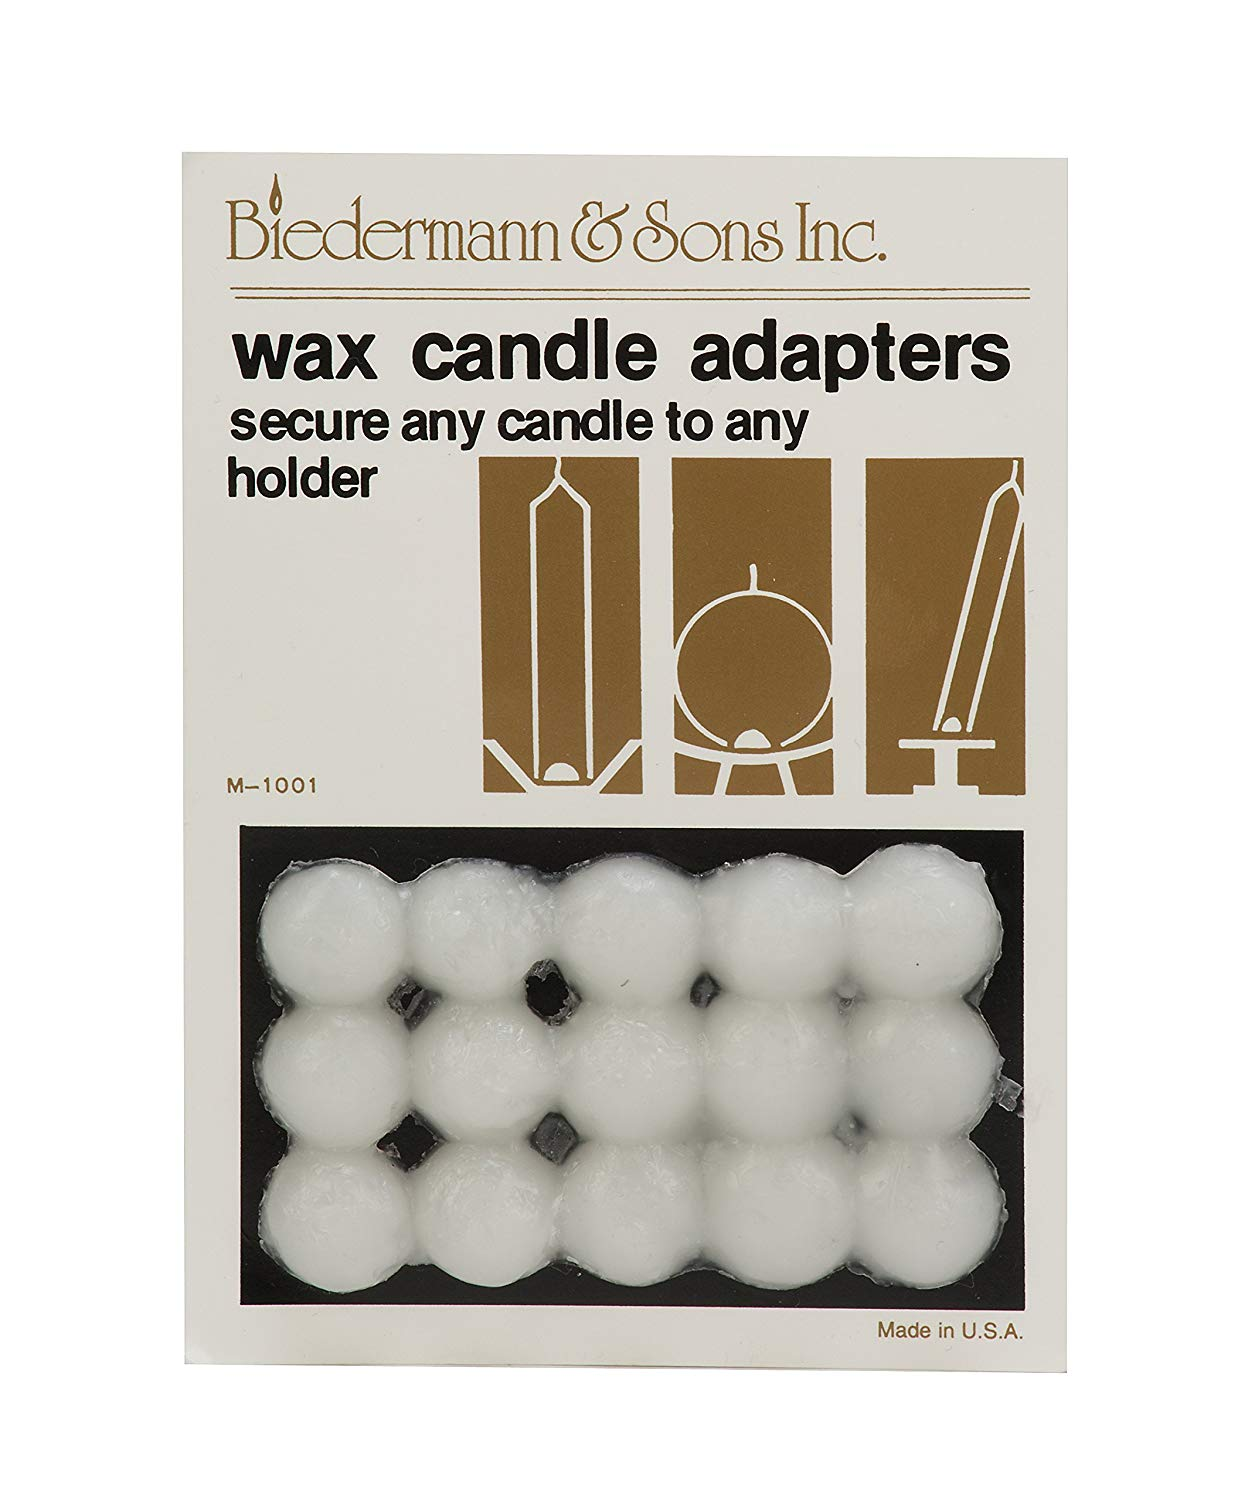 Wax Candle Adapter - Wax Candle Adhesive